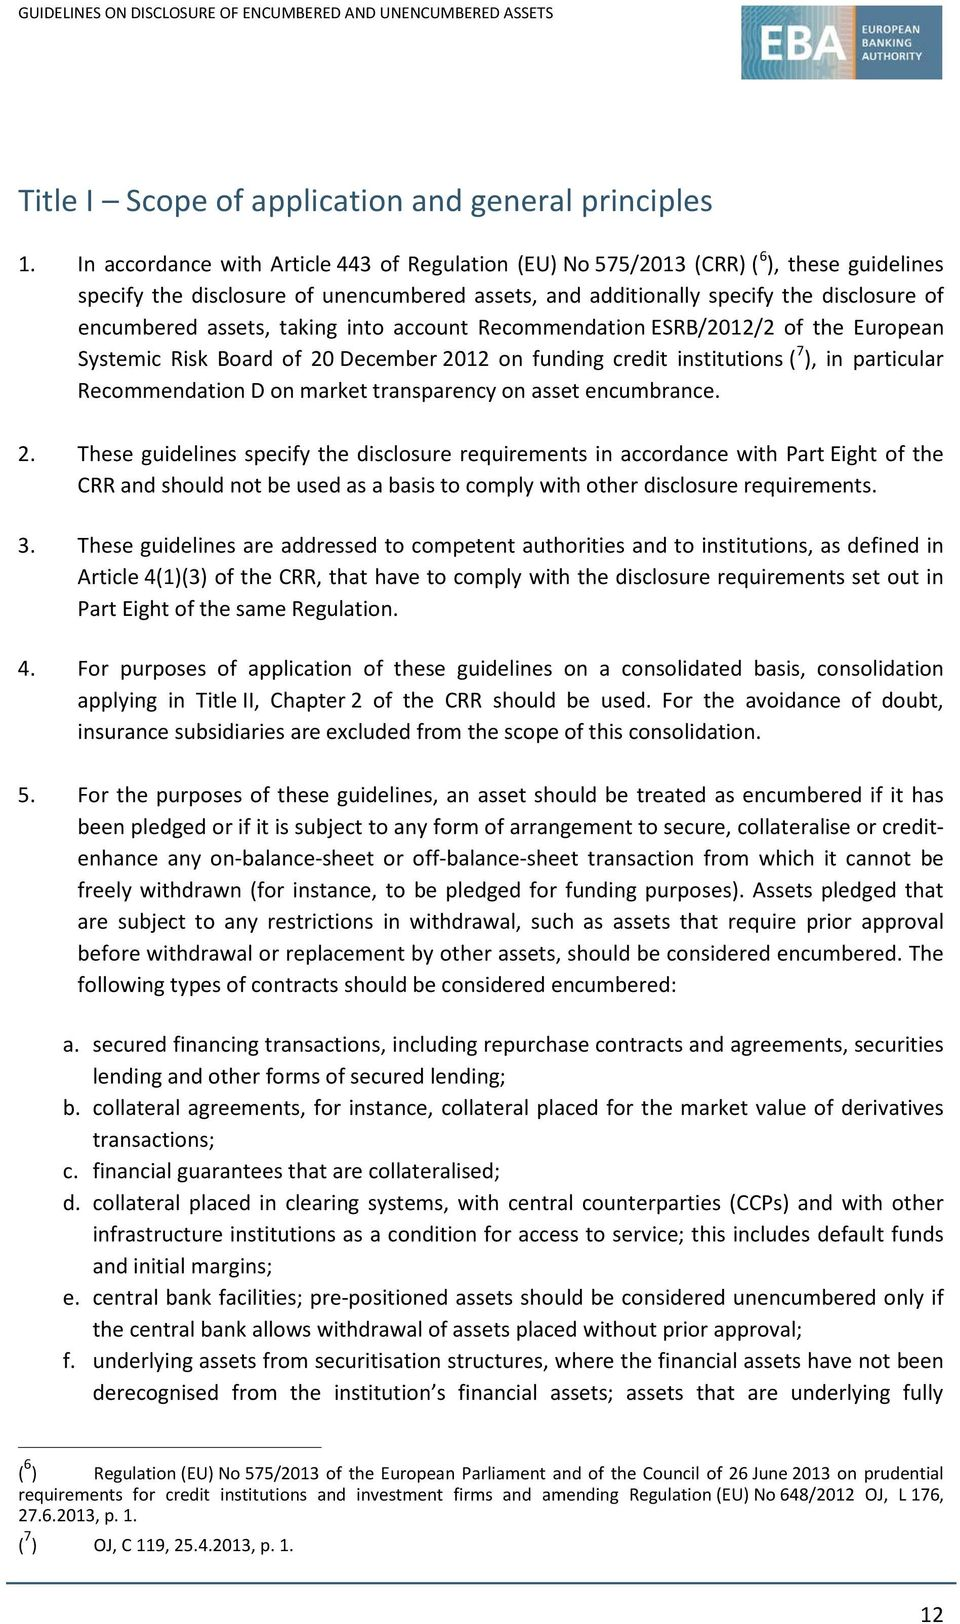 assets, taking into account Recommendation ESRB/2012/2 of the European Systemic Risk Board of 20 December 2012 on funding credit institutions ( 7 ), in particular Recommendation D on market